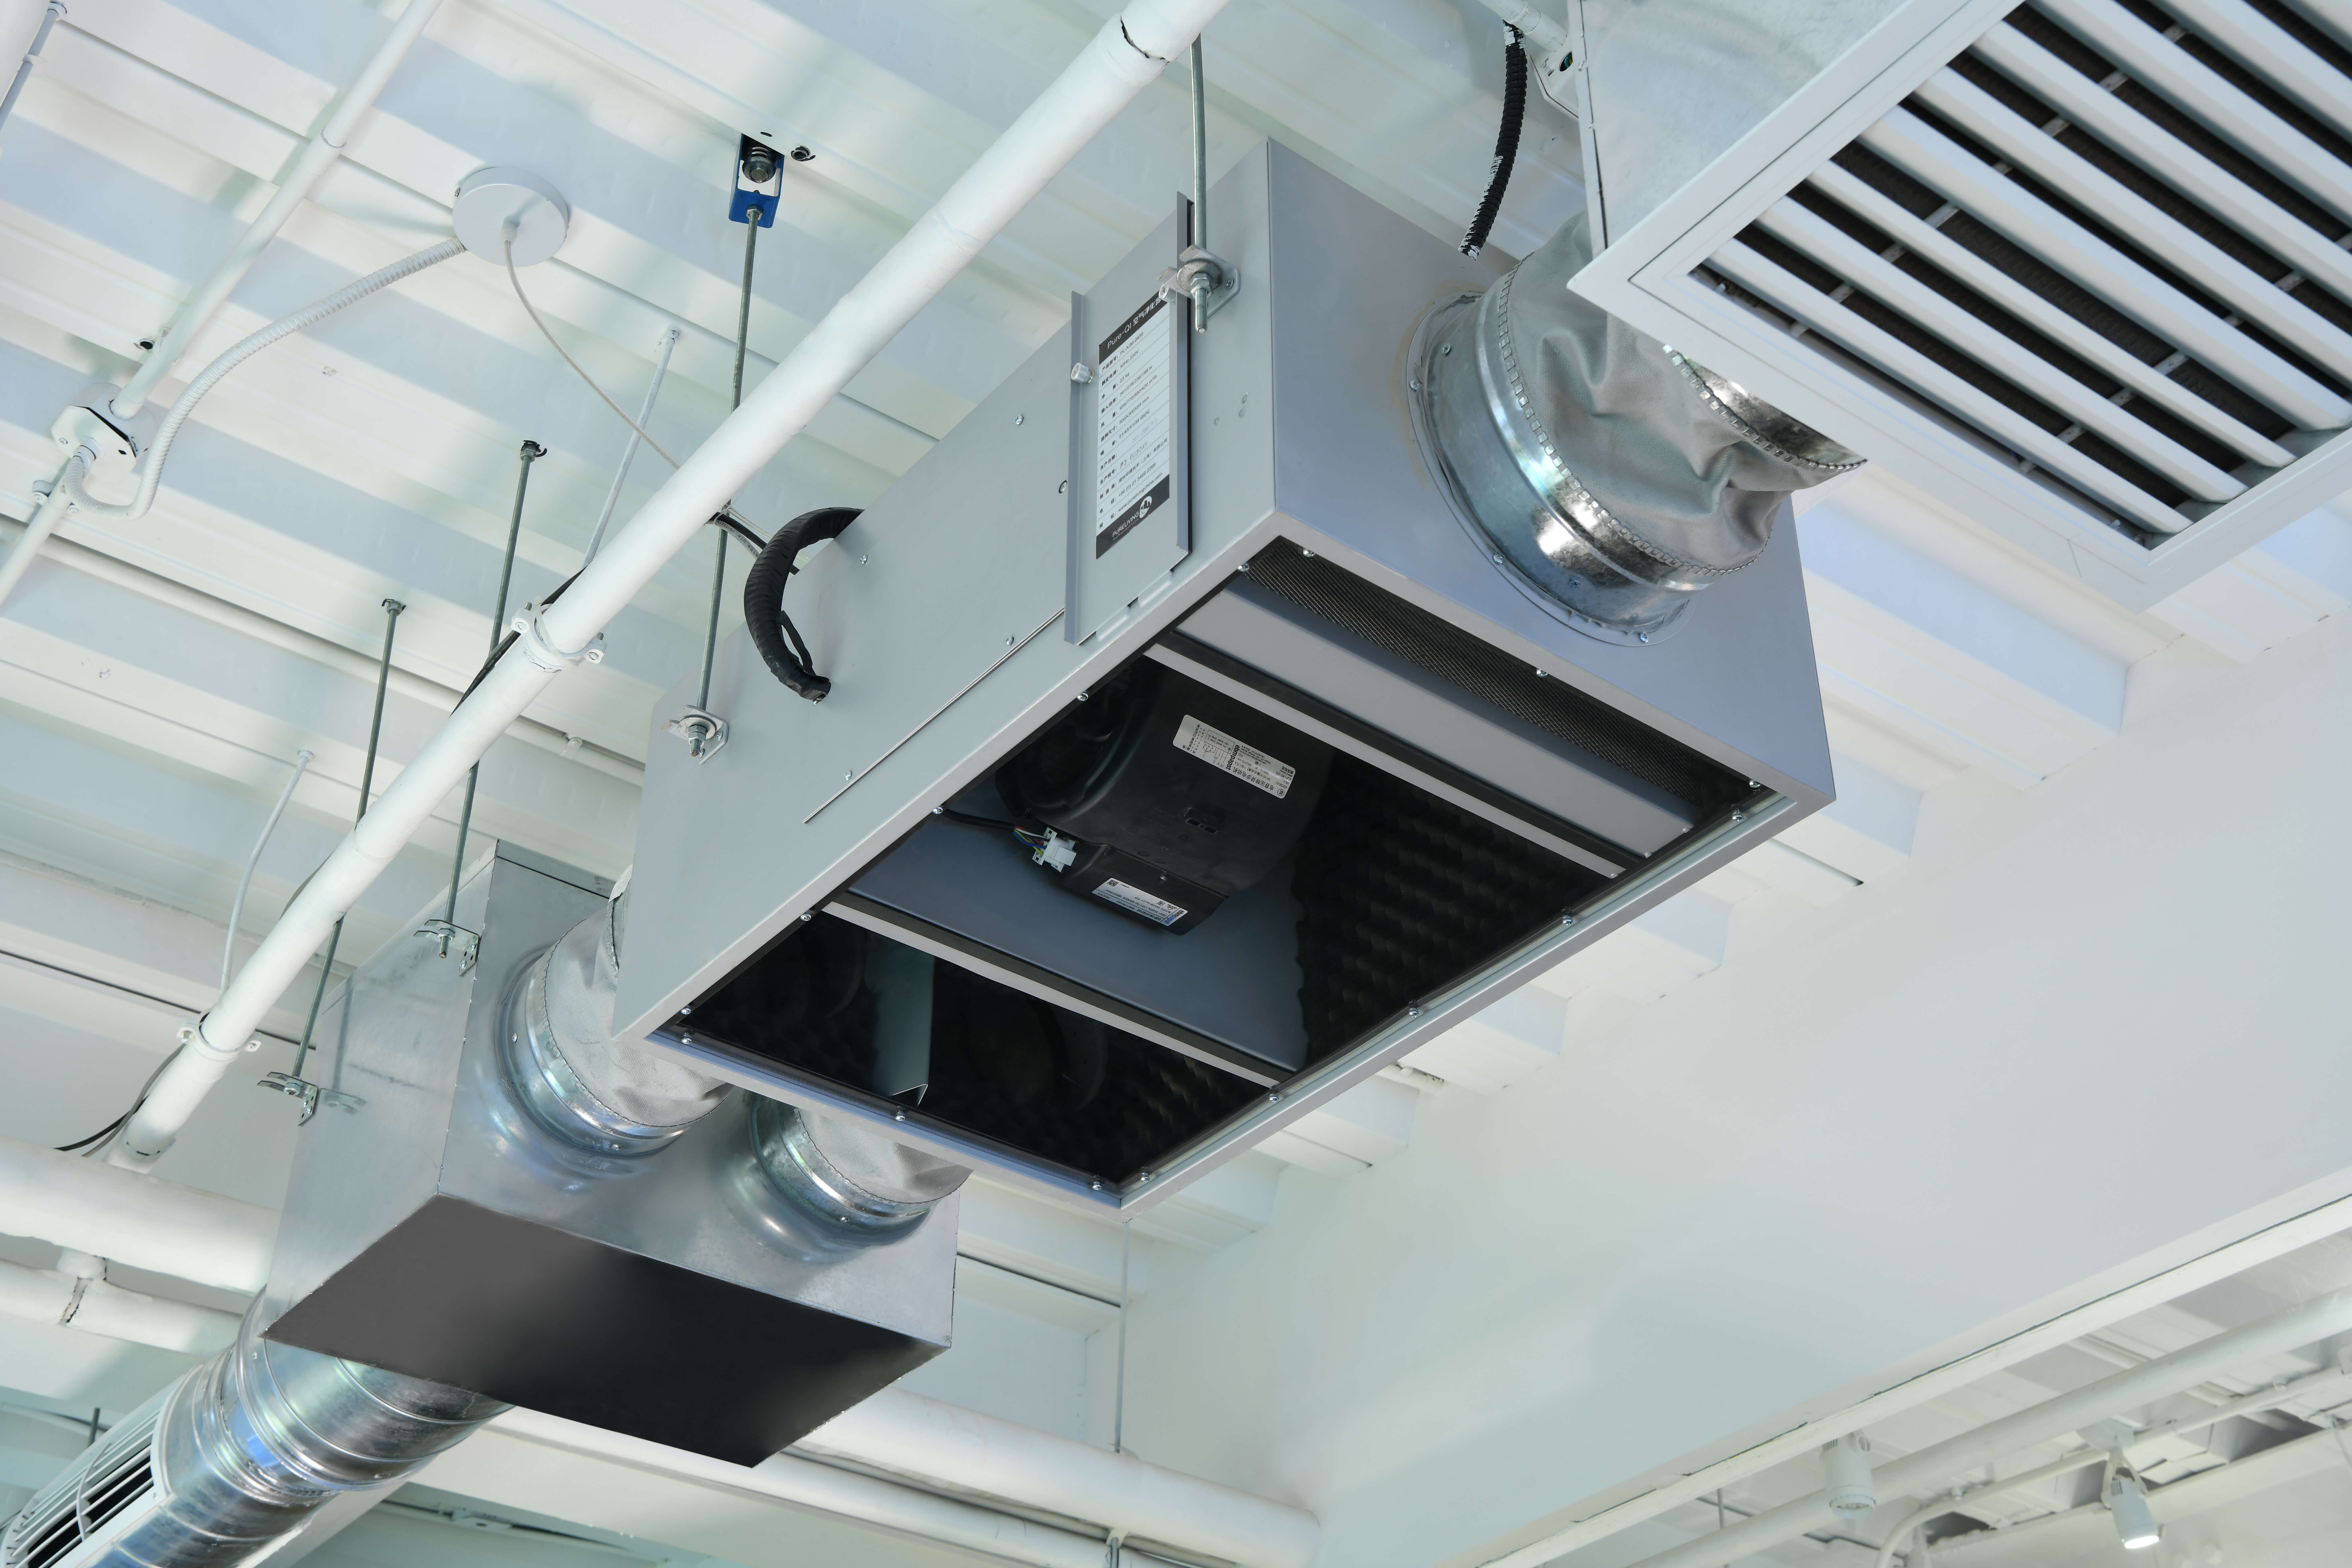 enVerid HEPA air filtration with UVC filter cleaning